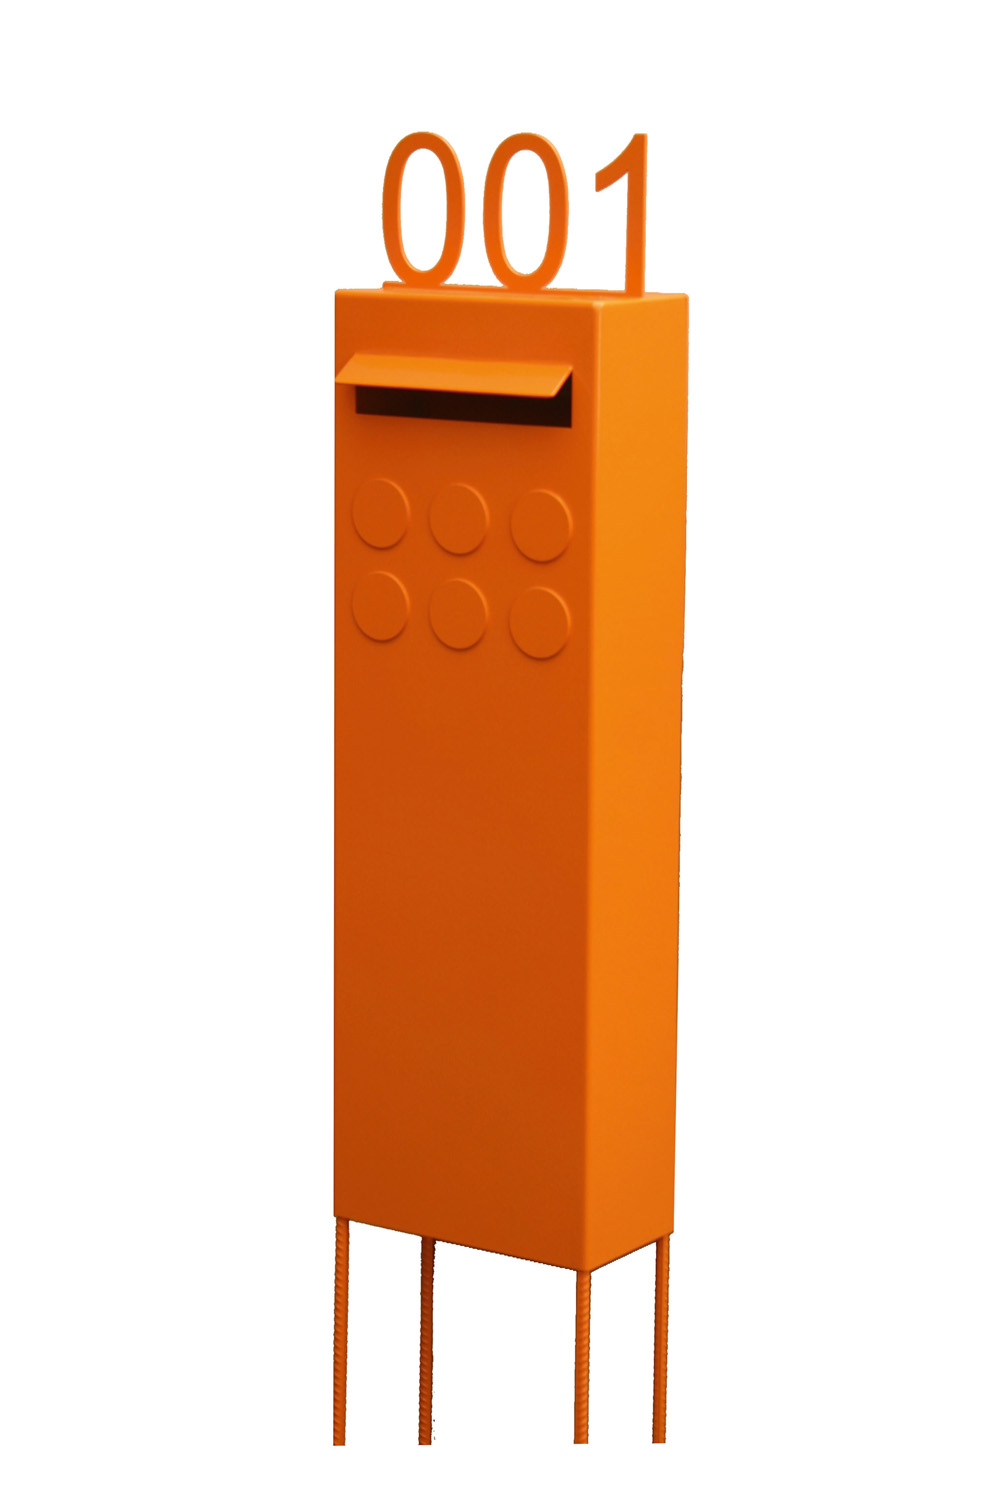 The Ned Kelly powdercoated letterbox is available from Entanglements www.entanglements.com.au